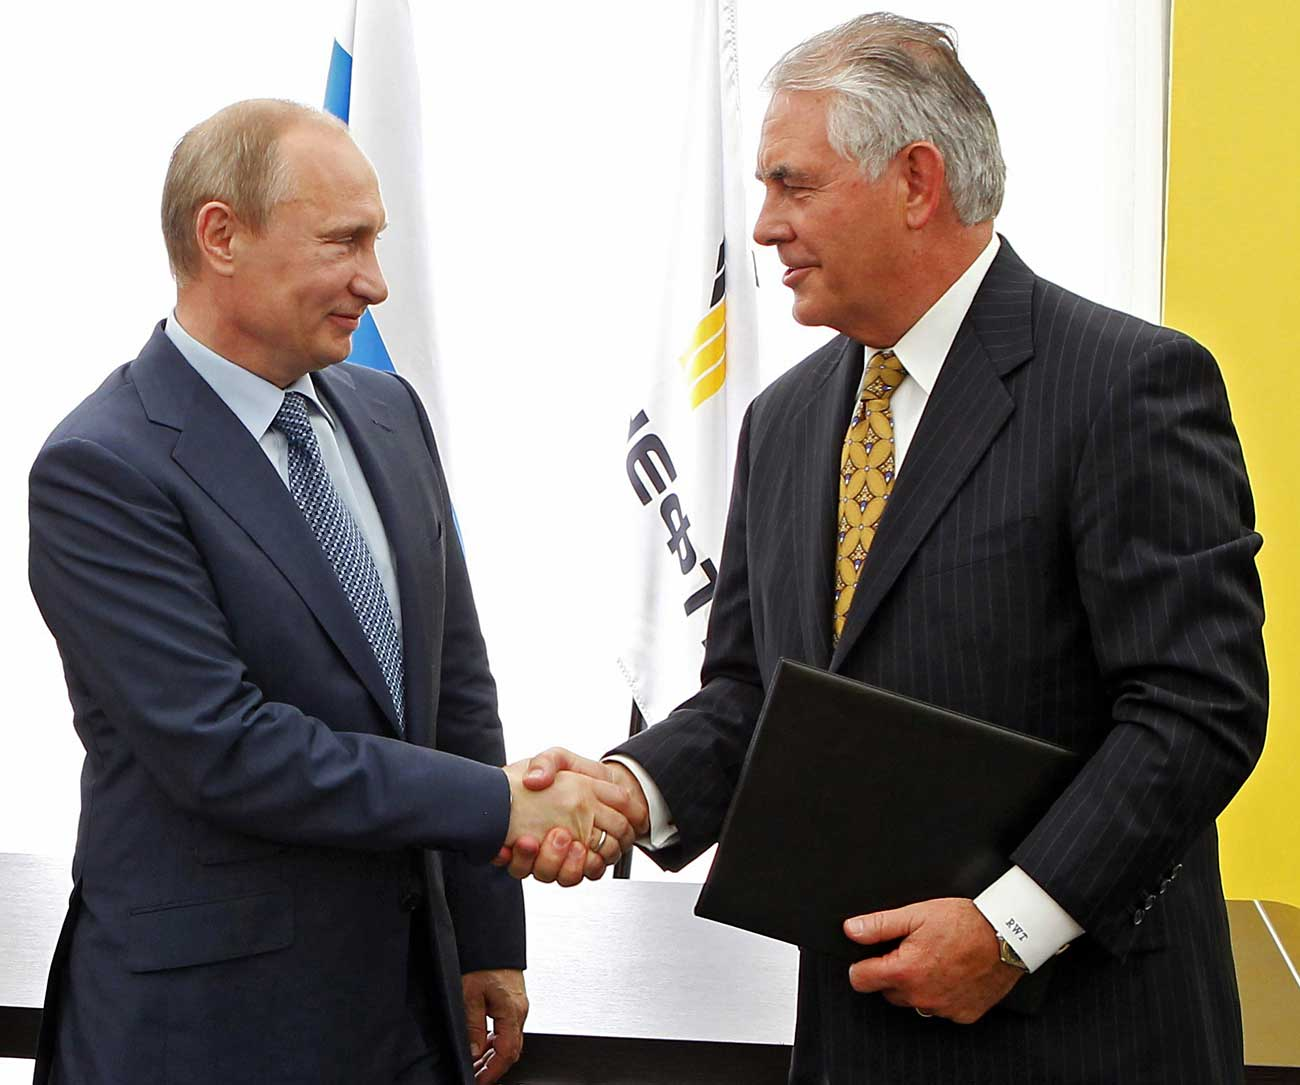 Russian President Vladimir Putin and ExxonMobil CEO Rex Tillerson shake hands at a signing ceremony of an agreement between state-controlled Russian oil company Rosneft and ExxonMobil at the Black Sea port of Tuapse, southern Russia, June 15, 2012. President-elect Donald Trump selected Tillerson to lead the State Department on Dec. 13, 2016.